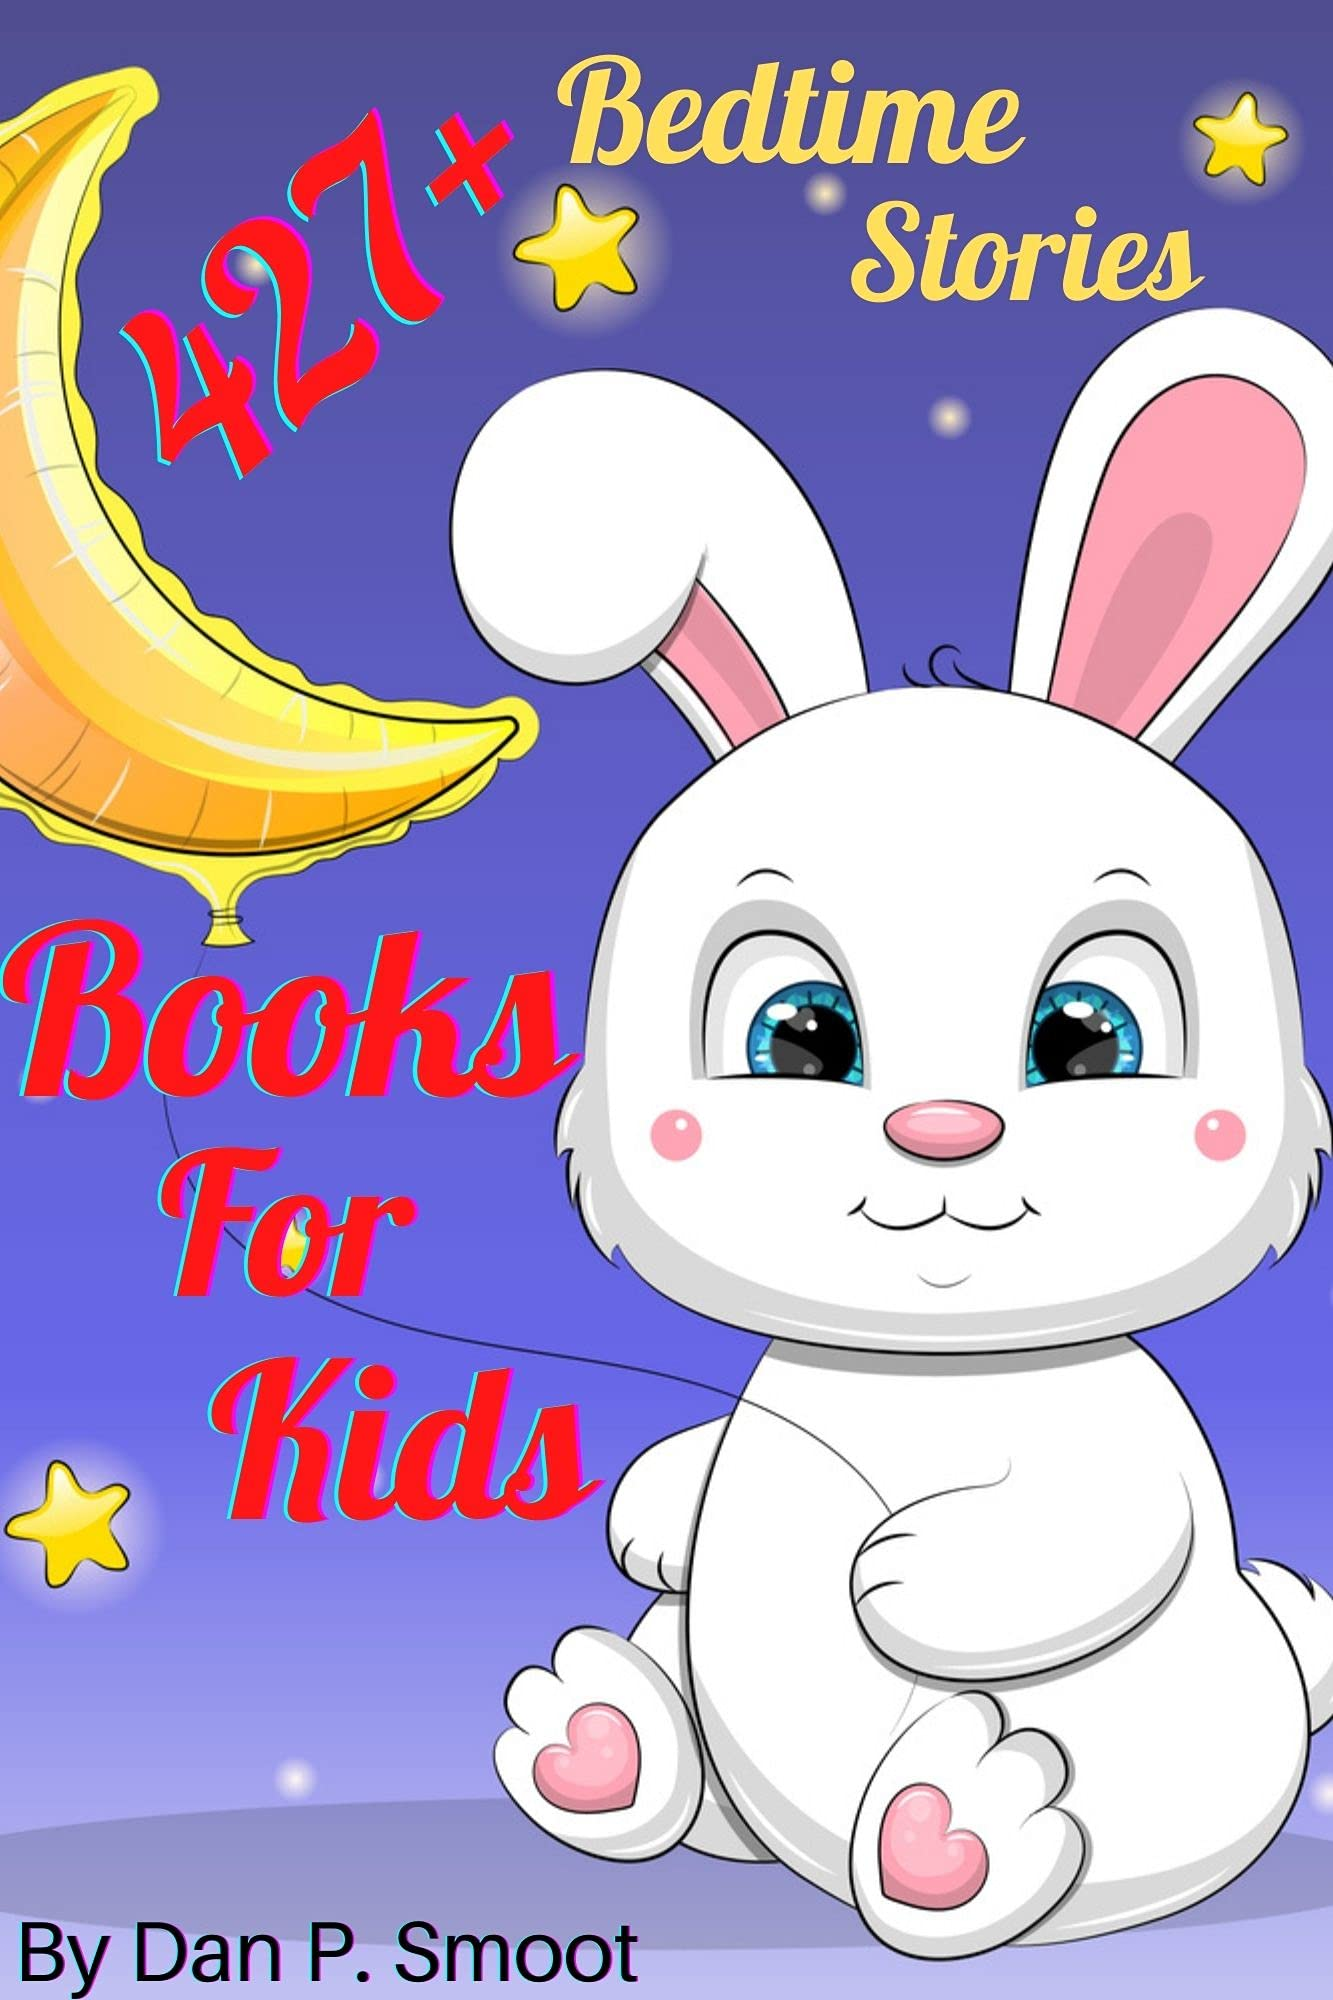 Books For Kids: 427+ Bedtime Stories, Fairy Tales, Animals, Fables, Adventure, Unicorn, Dragon, Dinosaurs, Relaxing Sleep Tales & Children Story Collections, ages 4-12 (Book 9)